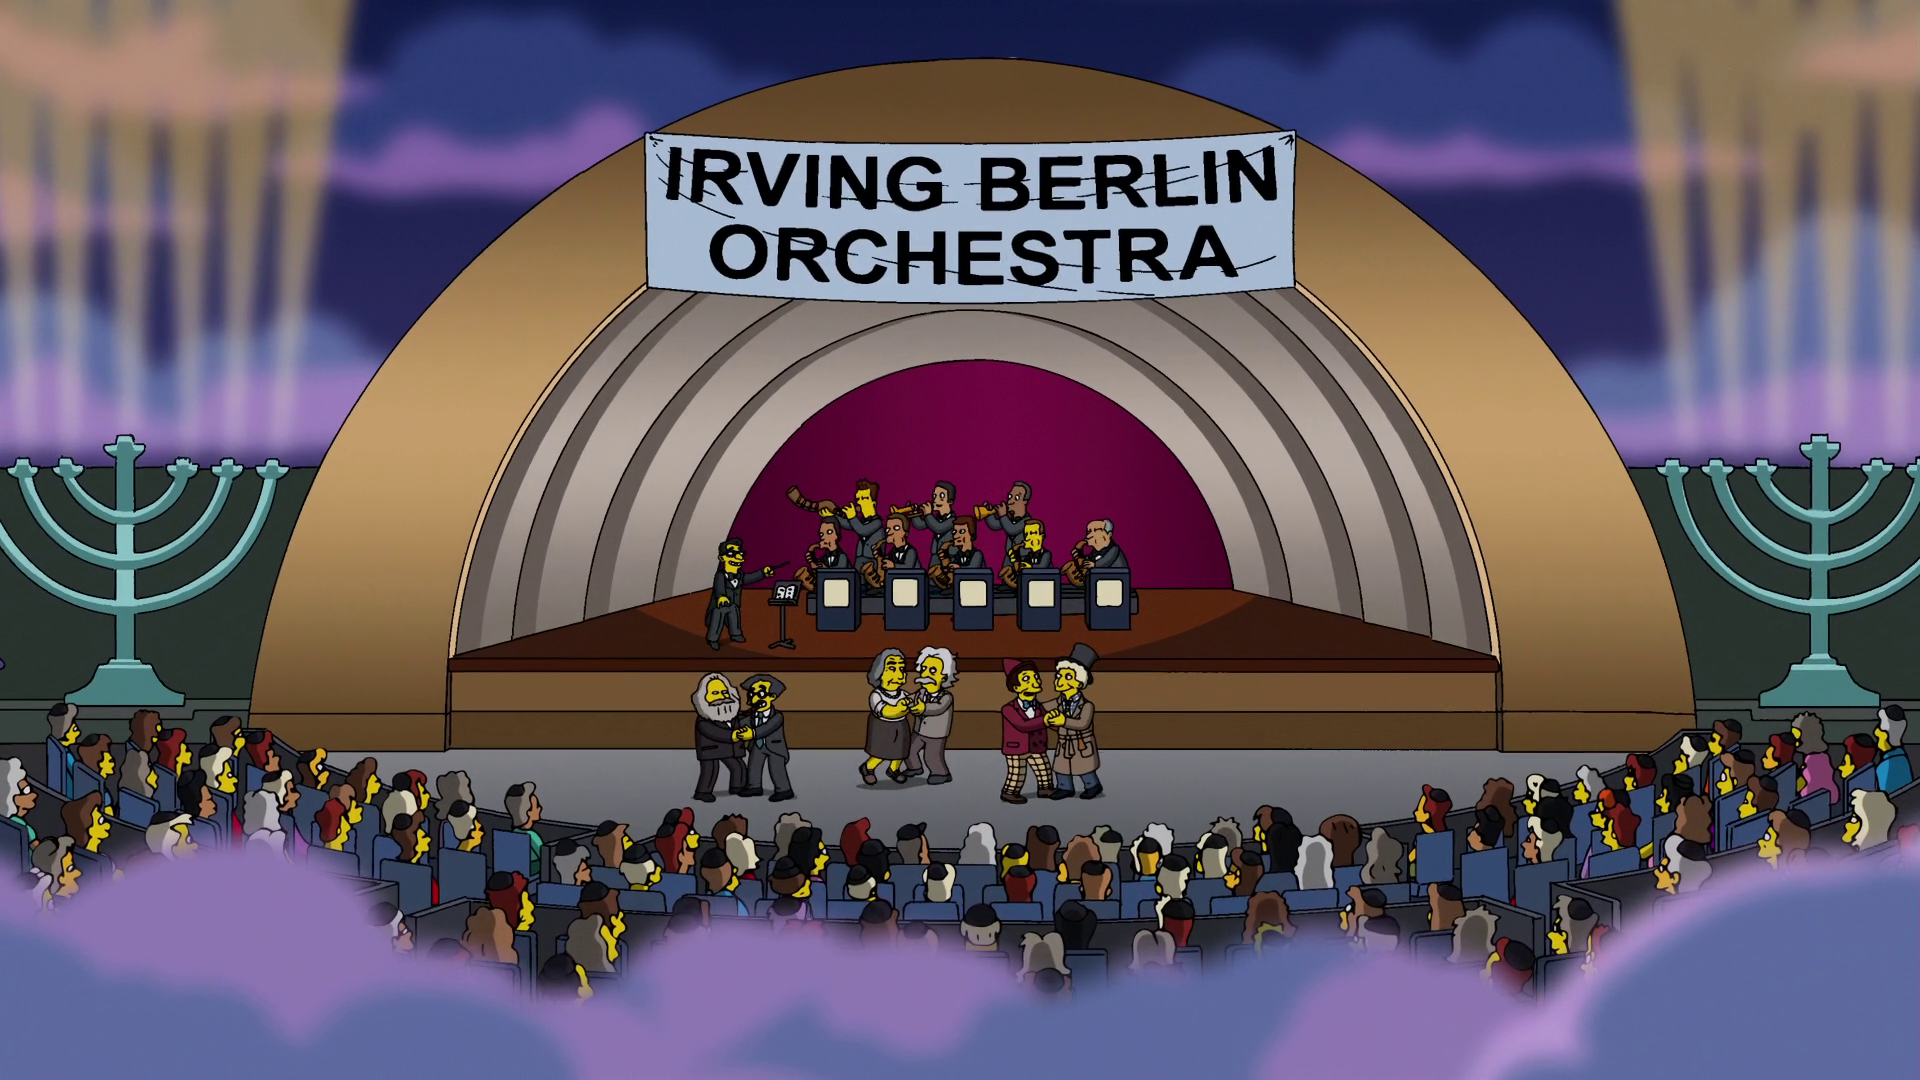 Irving Berlin Orchestra.png